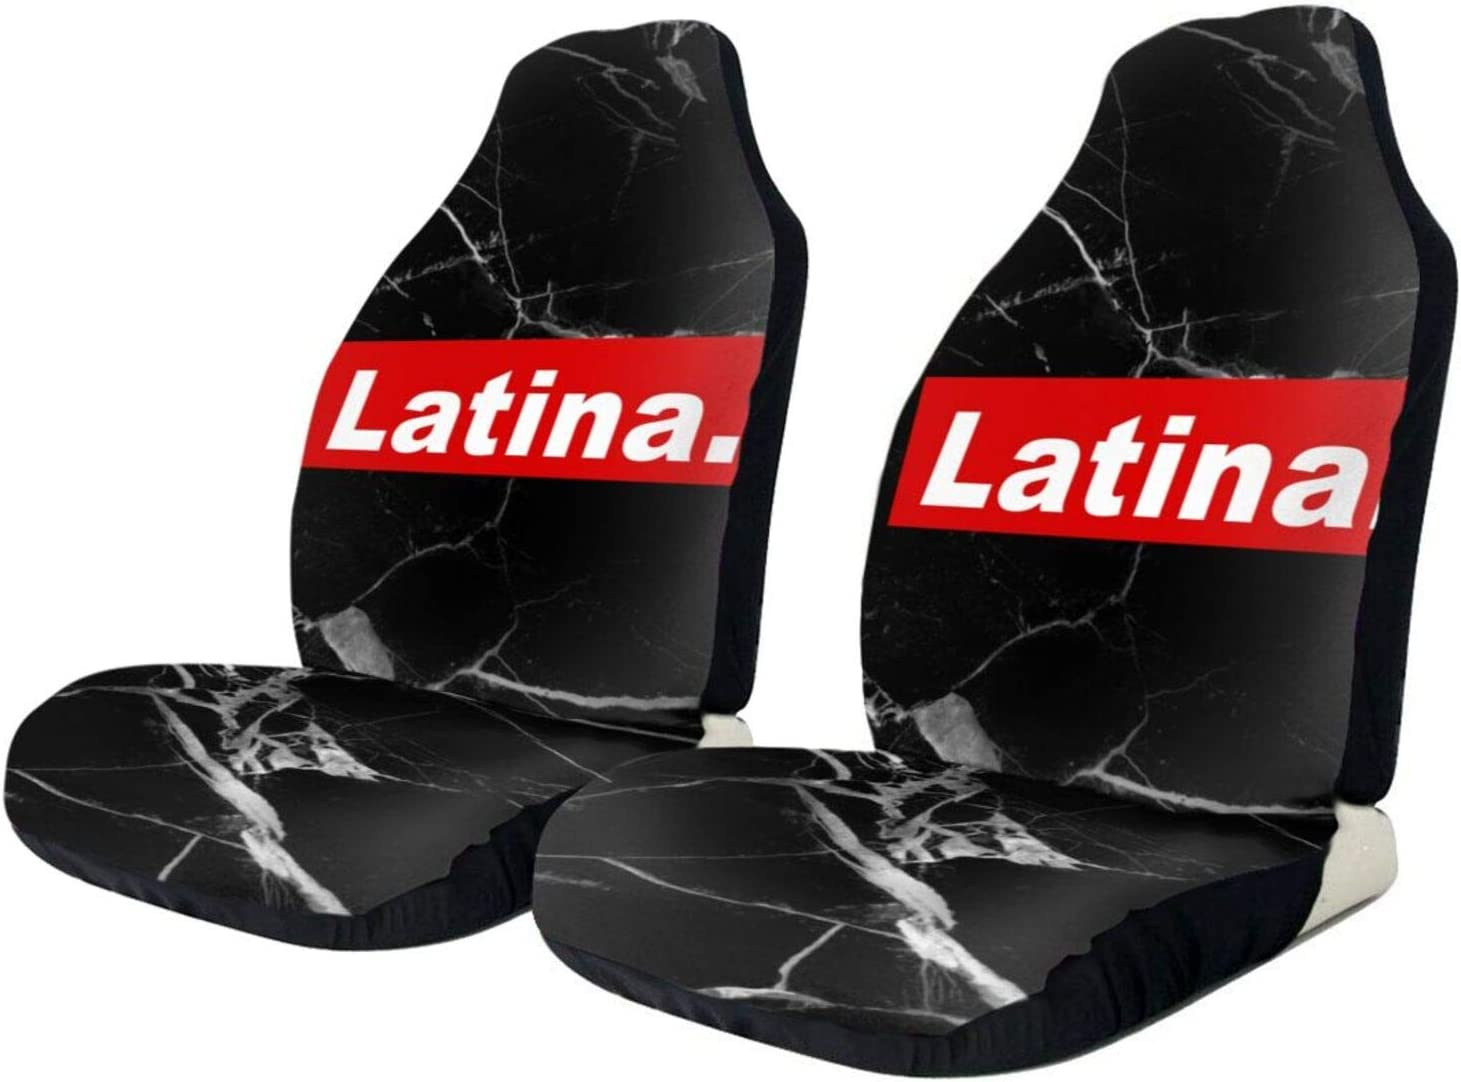 Rotimono Indefinitely Latina Car Seat Cover Covers Mat Cushion Excellence Protector